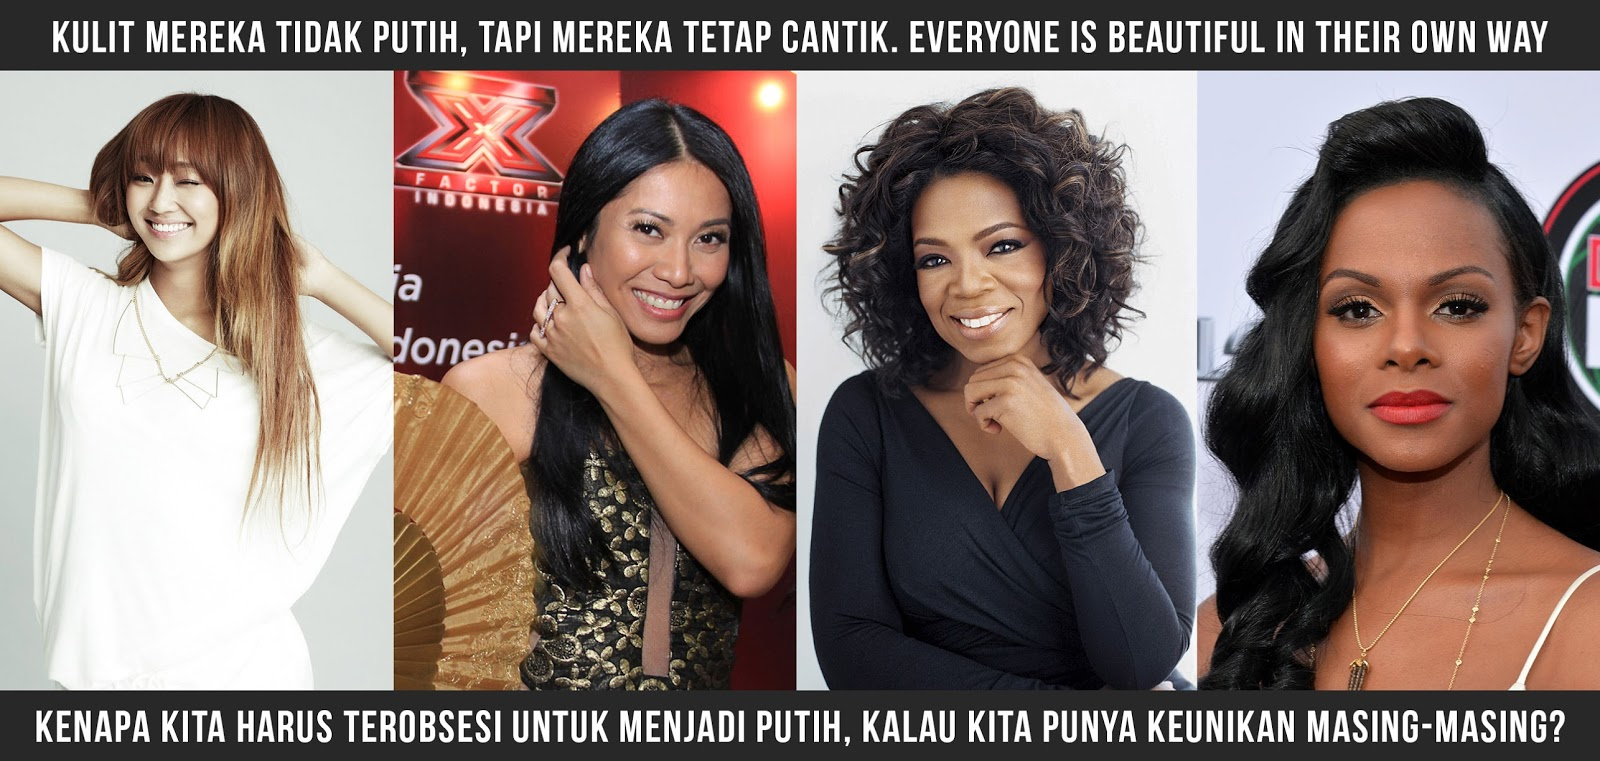 we are all beautiful in our way, putih tidak identik dengan cantik